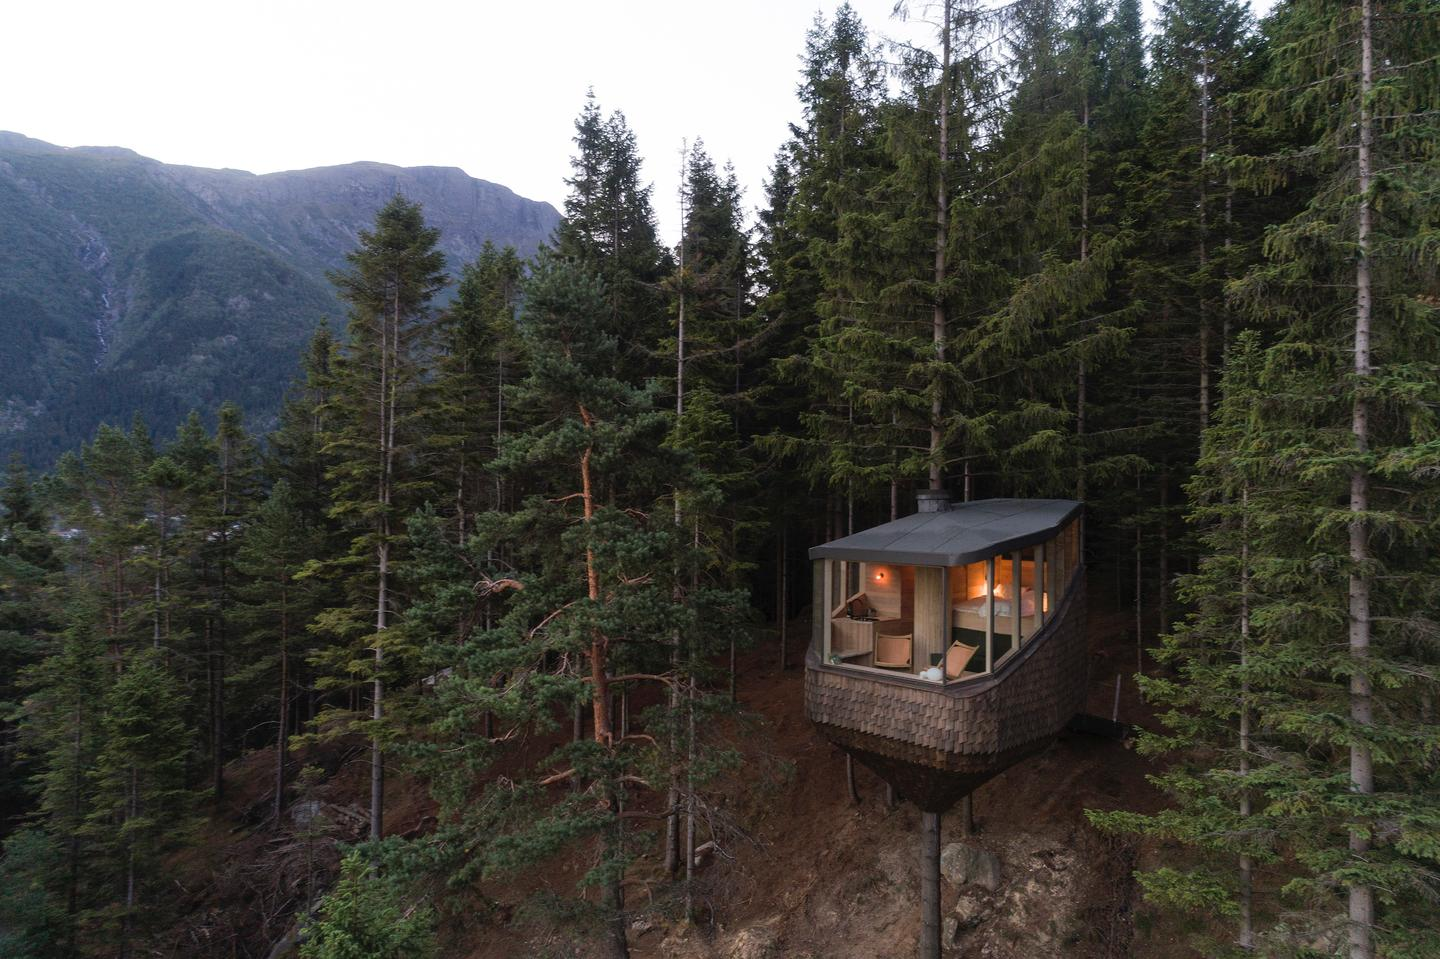 Woodnest is located in a forest near the Hardangerfjord in Odda, Norway